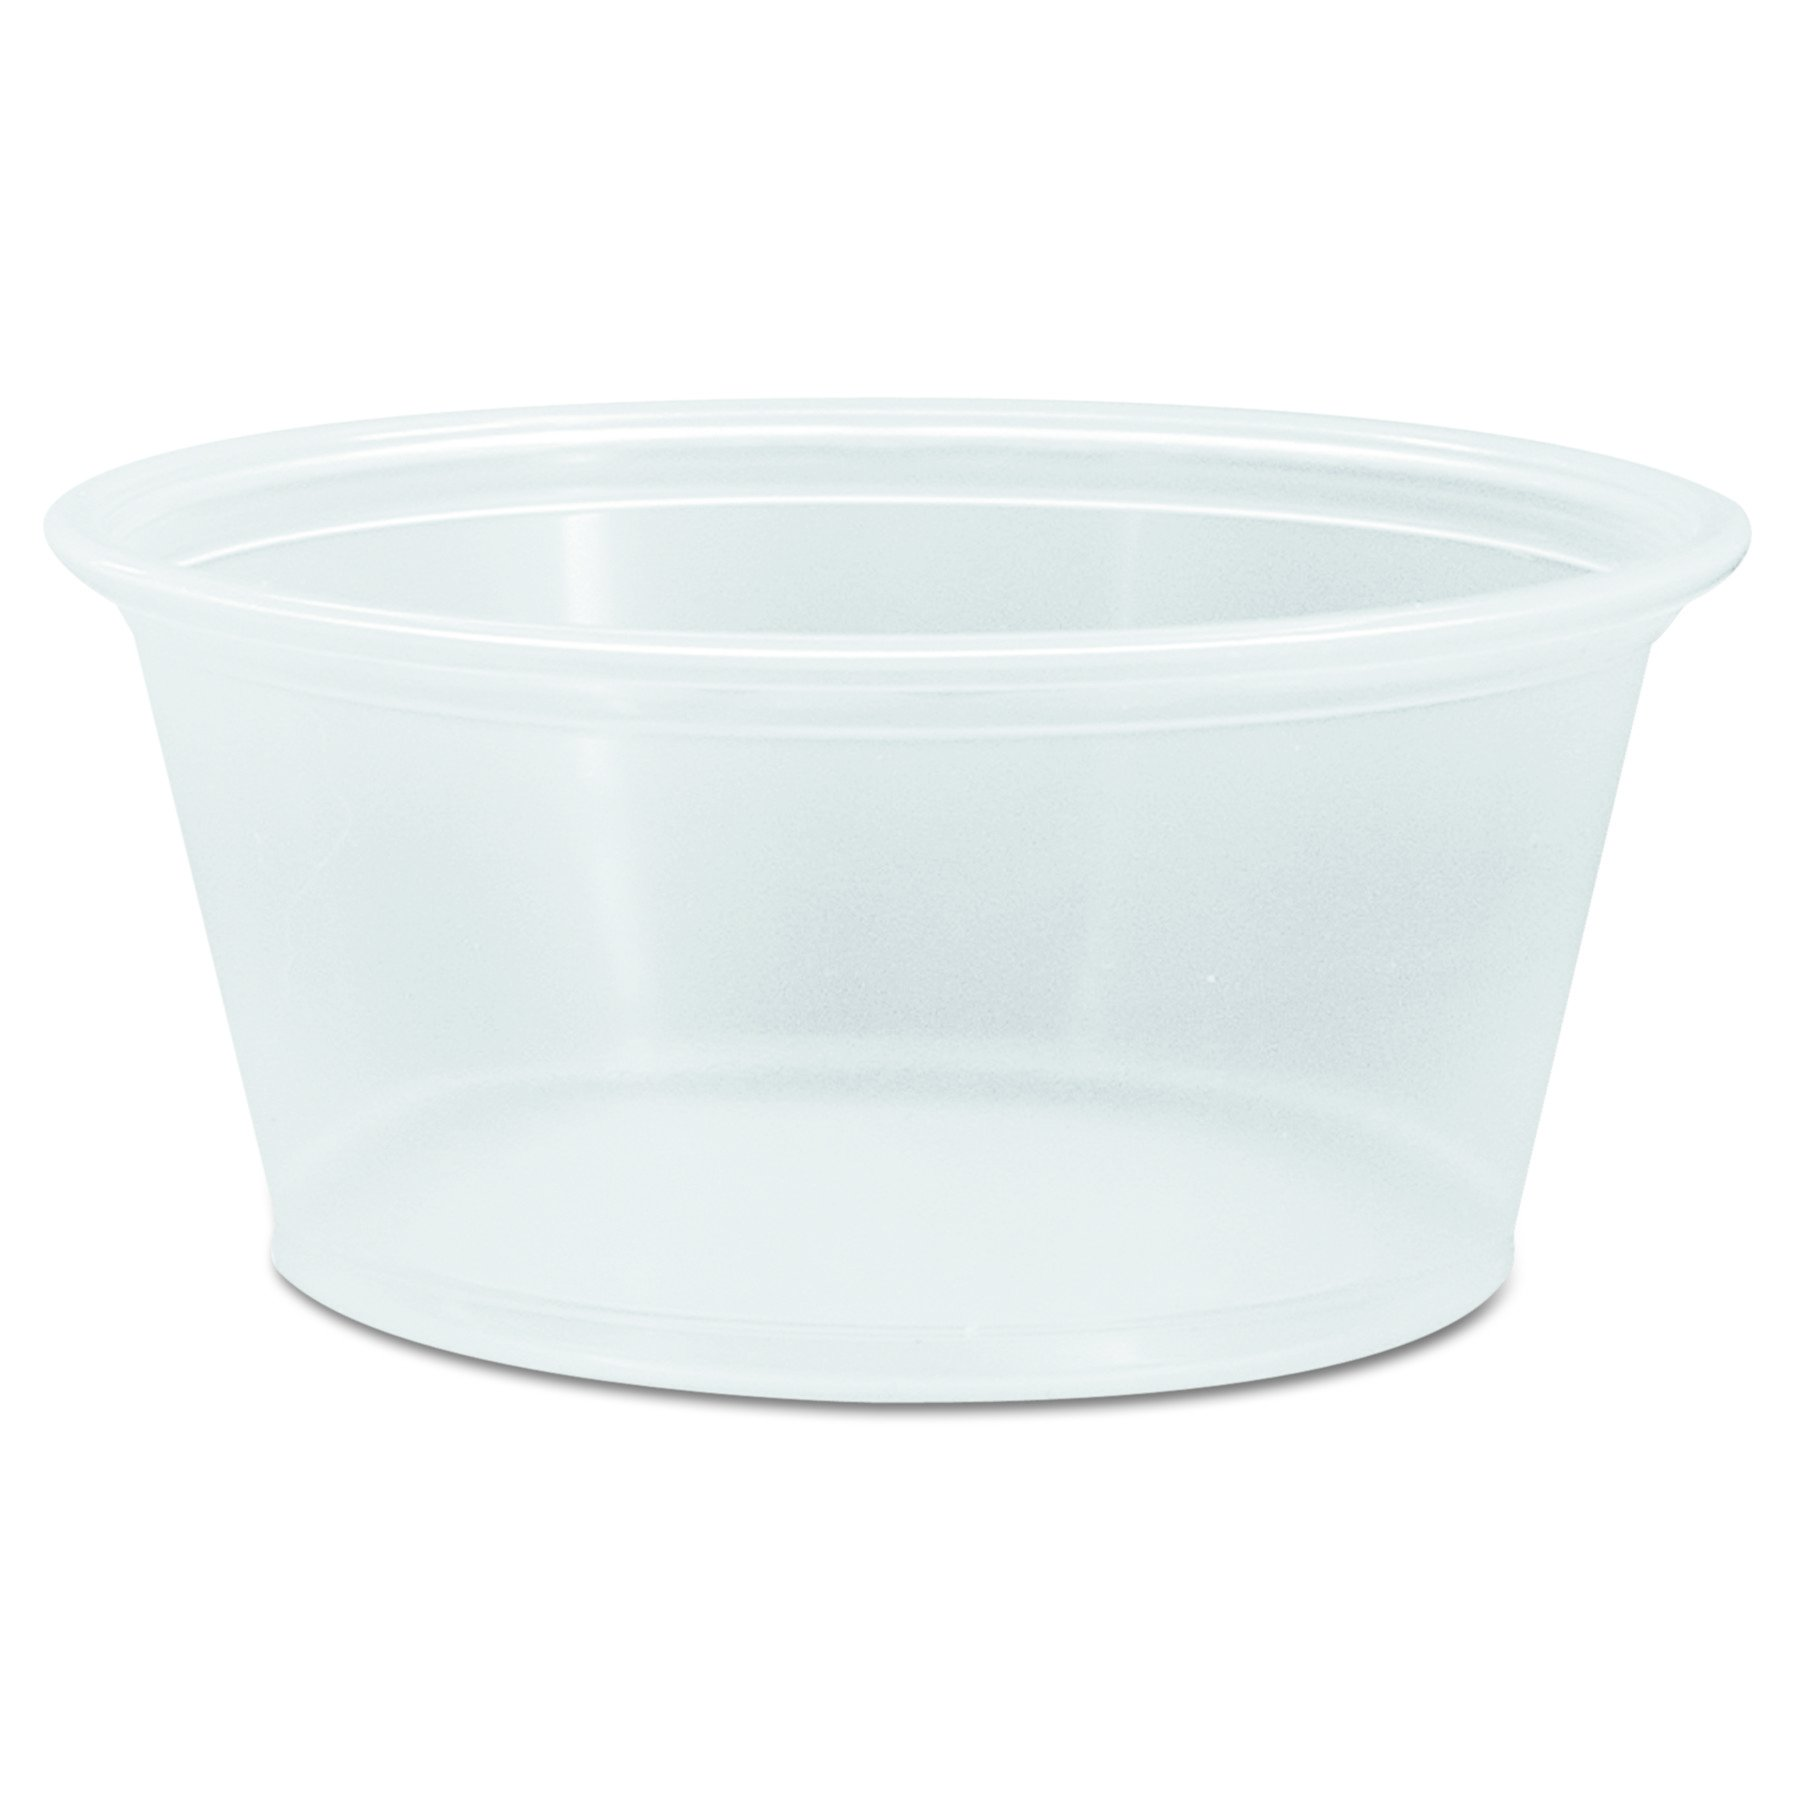 Dart 325PC 3.25 oz Clear PP Portion Container (Case of 2500) by DART